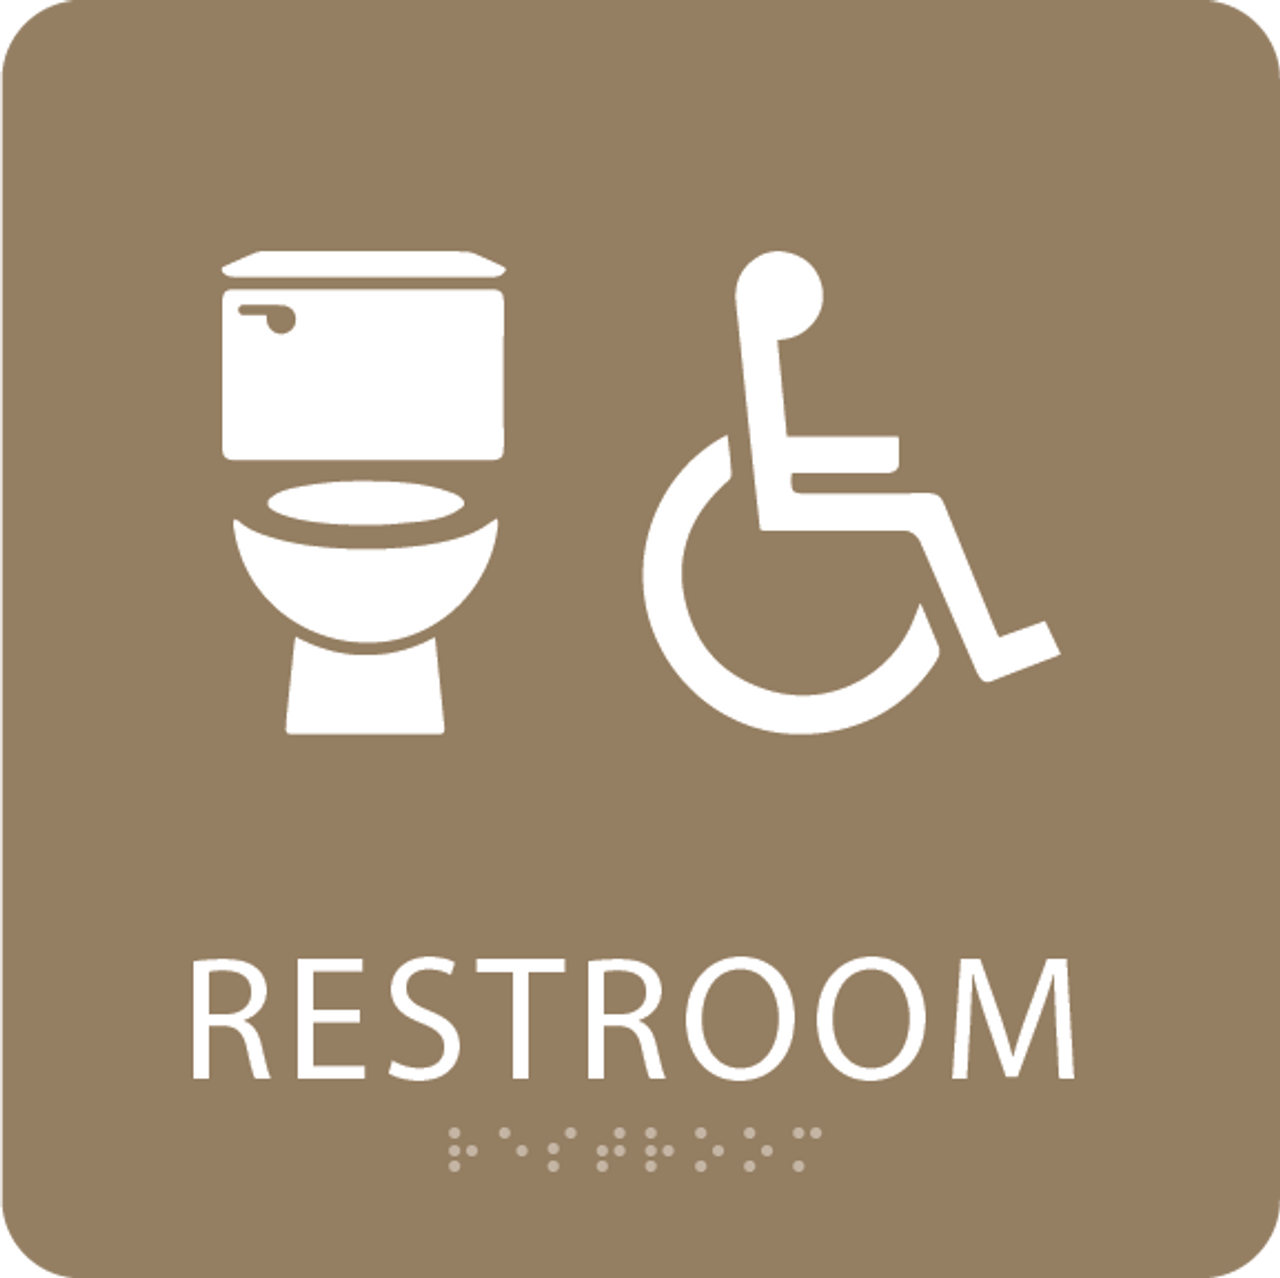 Light Brown Accessible Toilet Sign